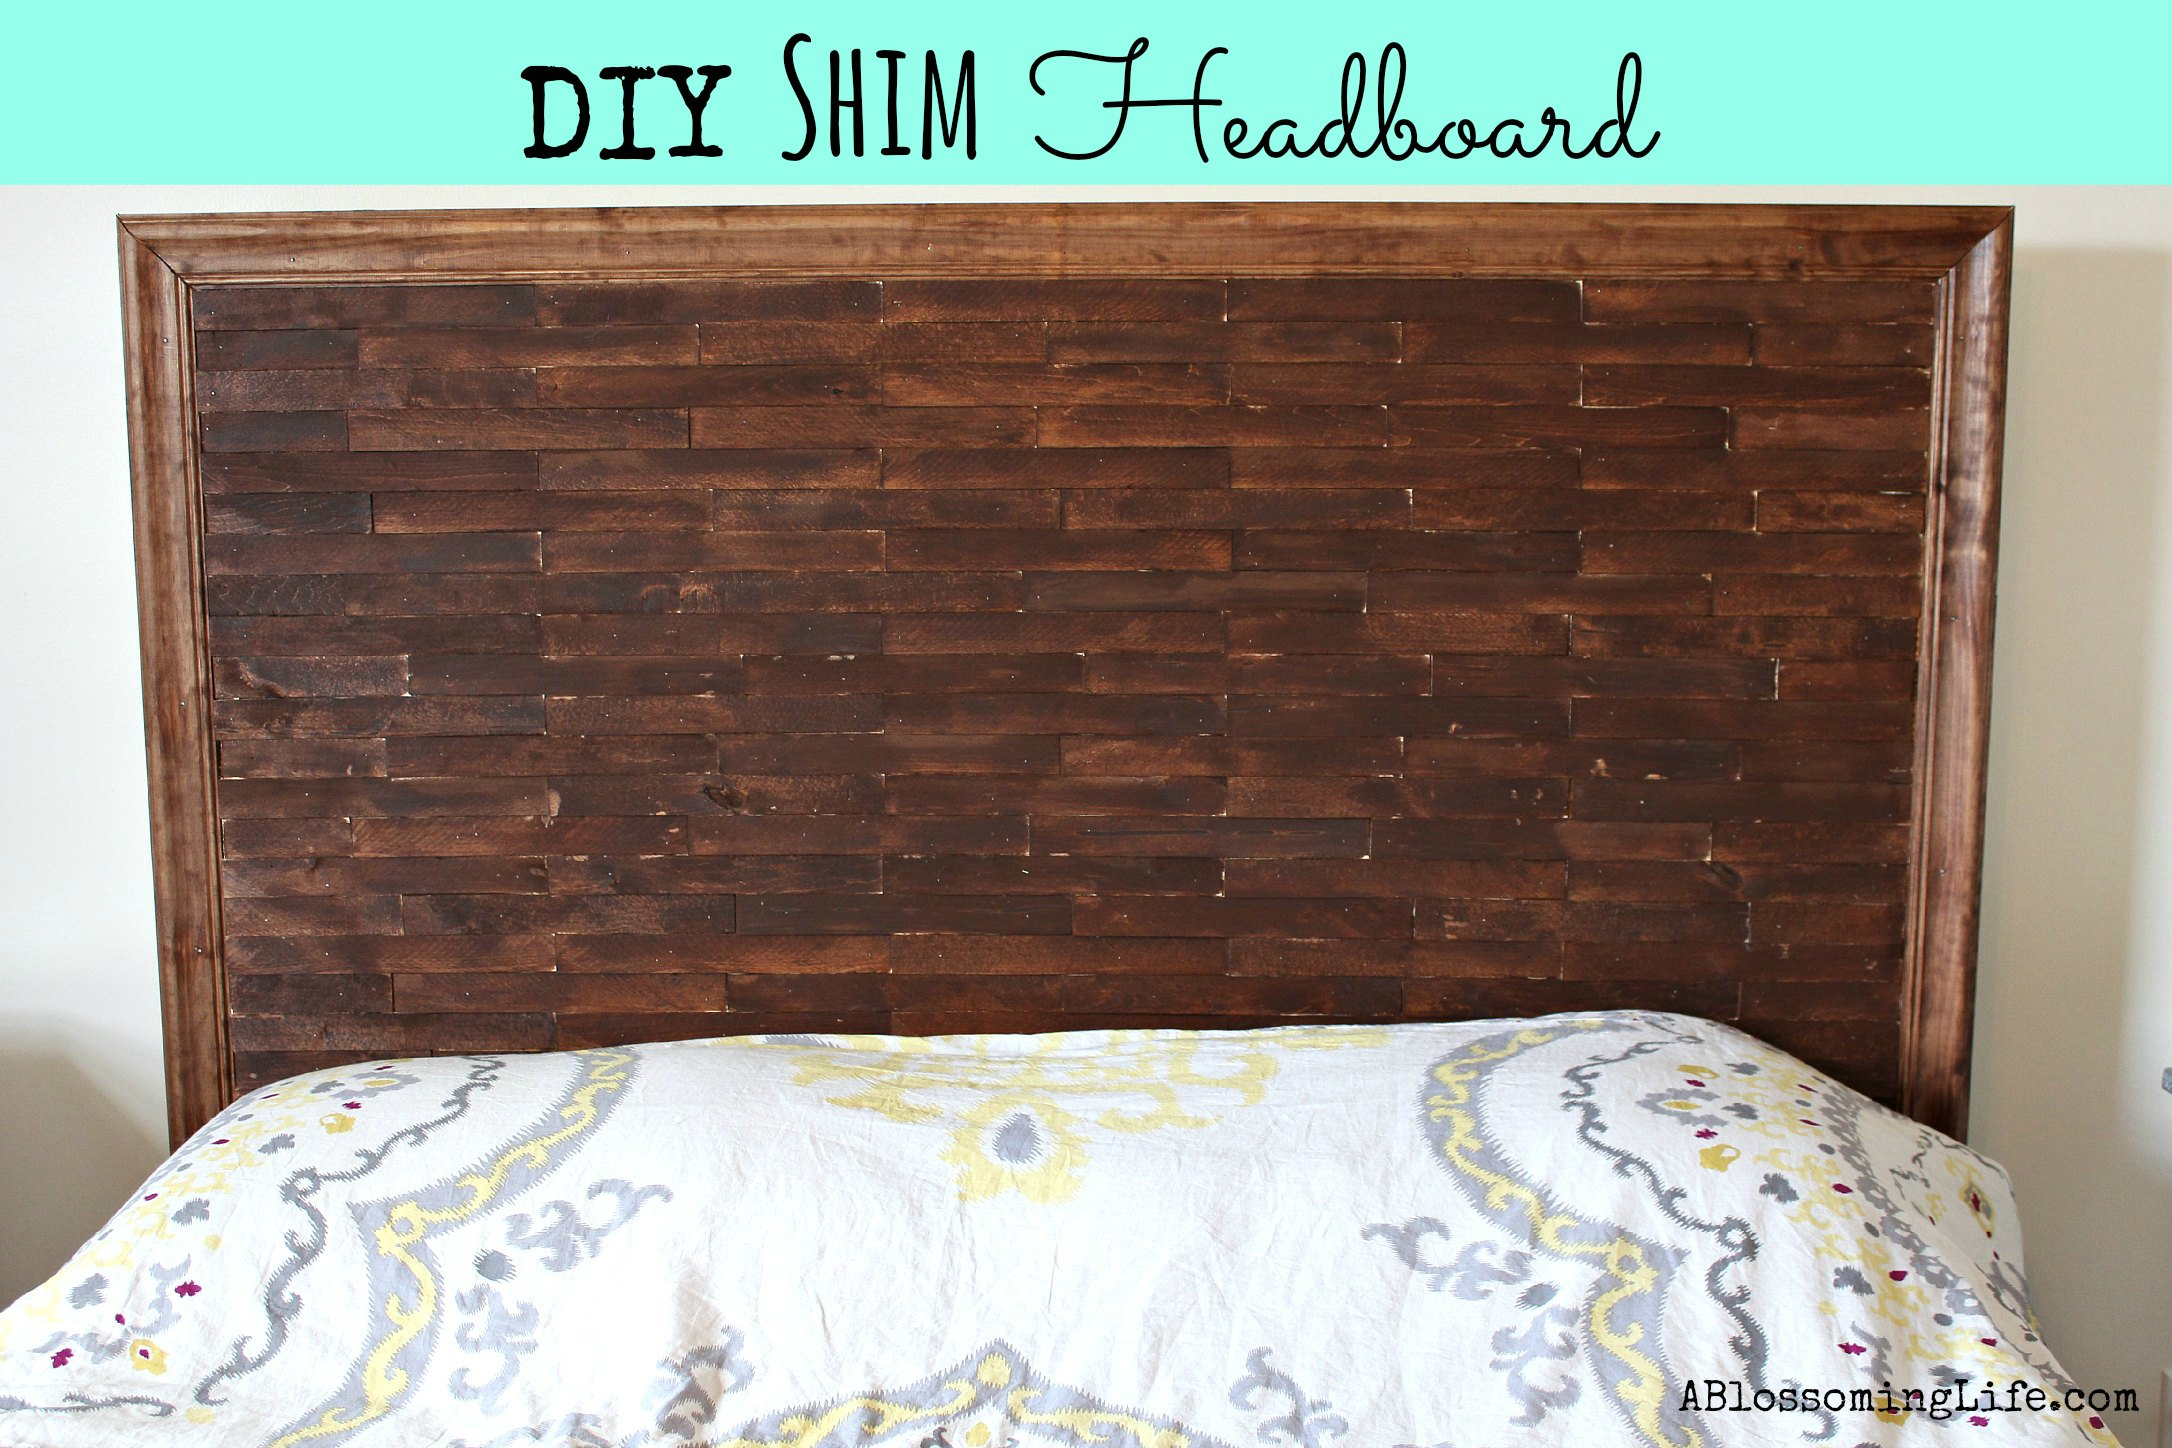 Diy shim headboard oh my creative